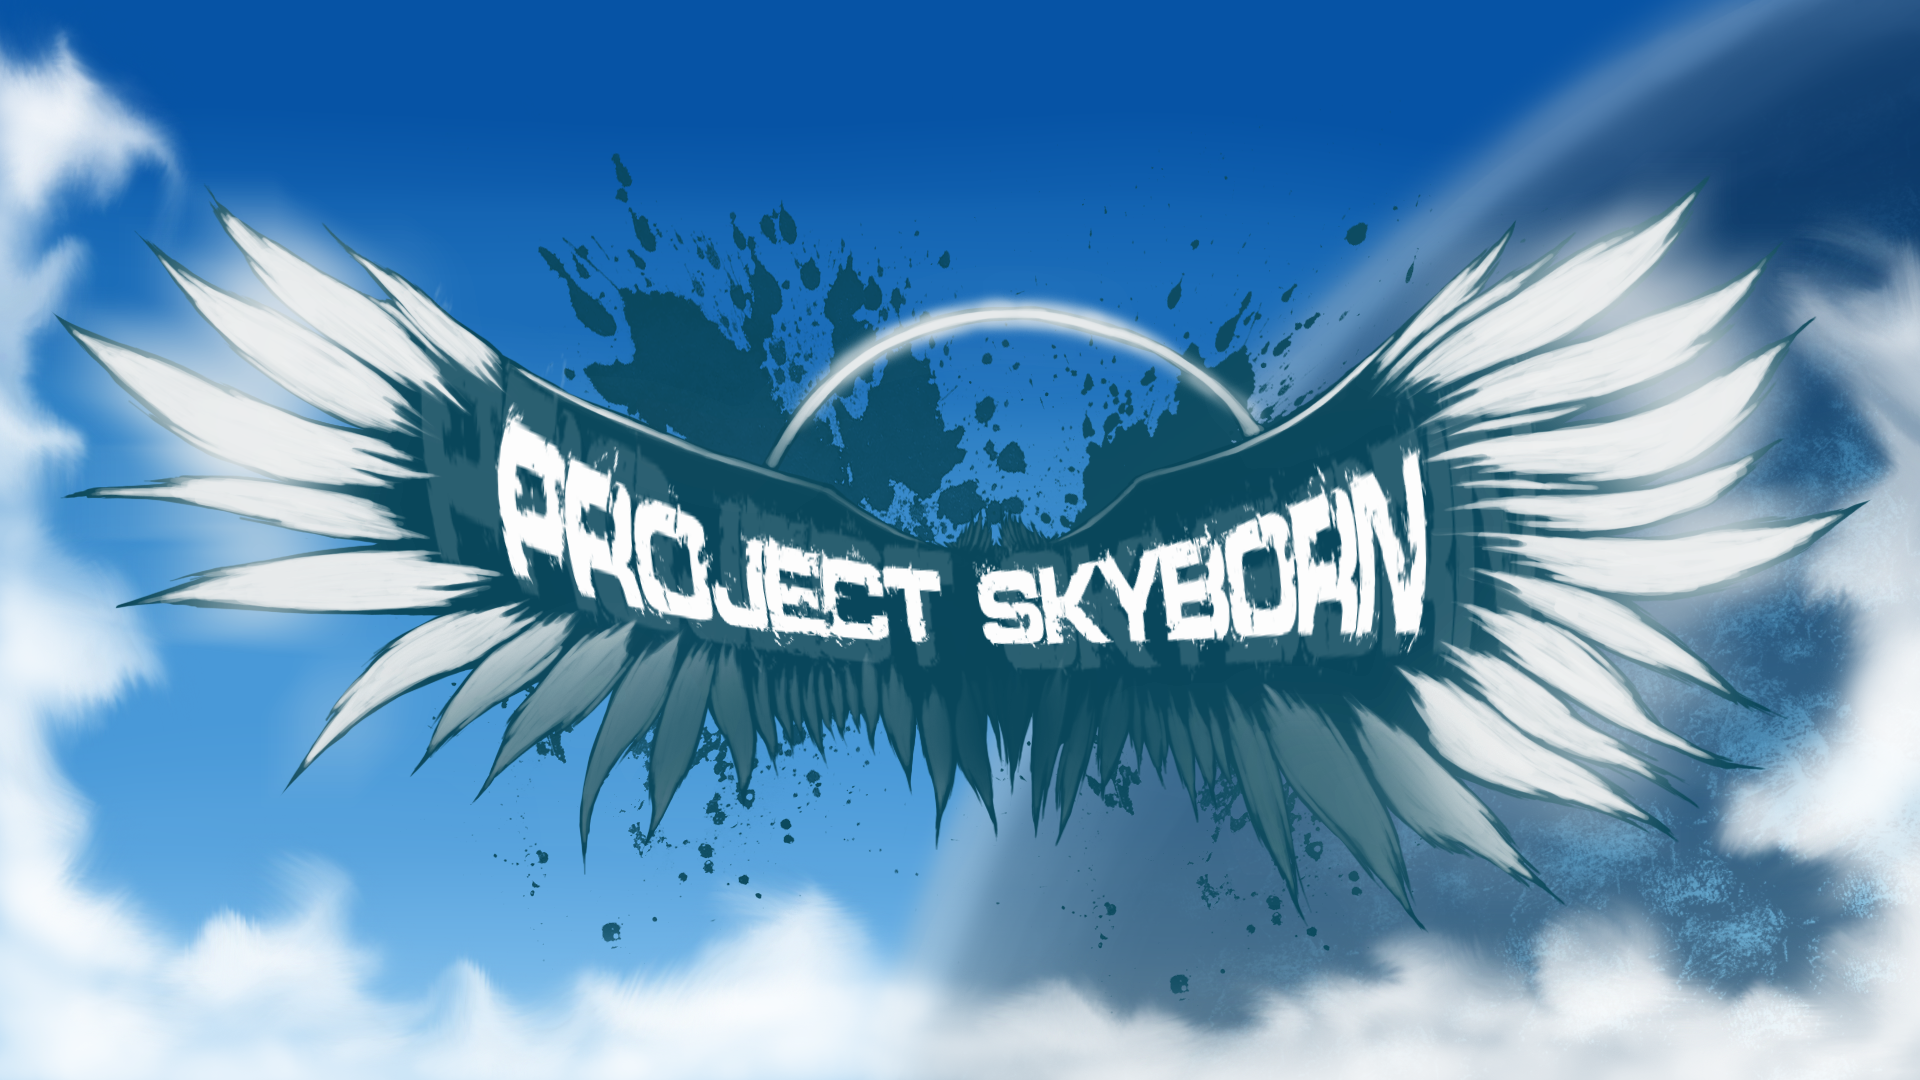 project_skyborn_wallpaper_by_misucra-d8zce9p.png